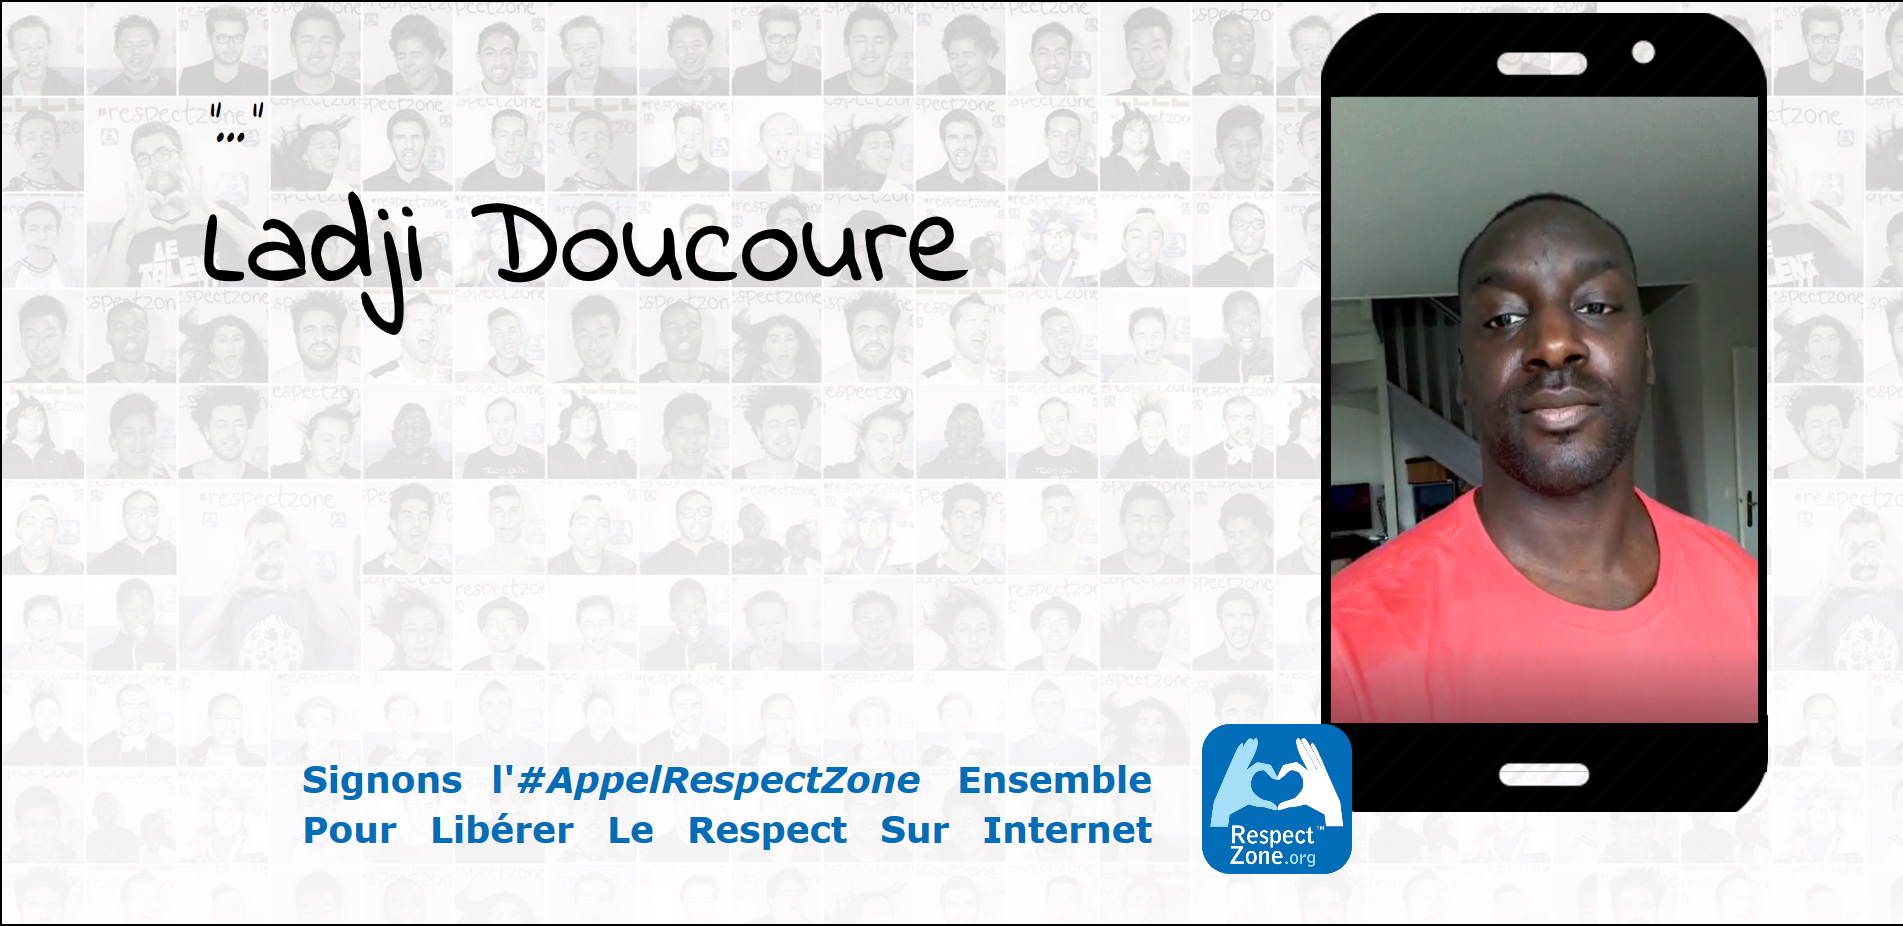 Ladji Doucoure